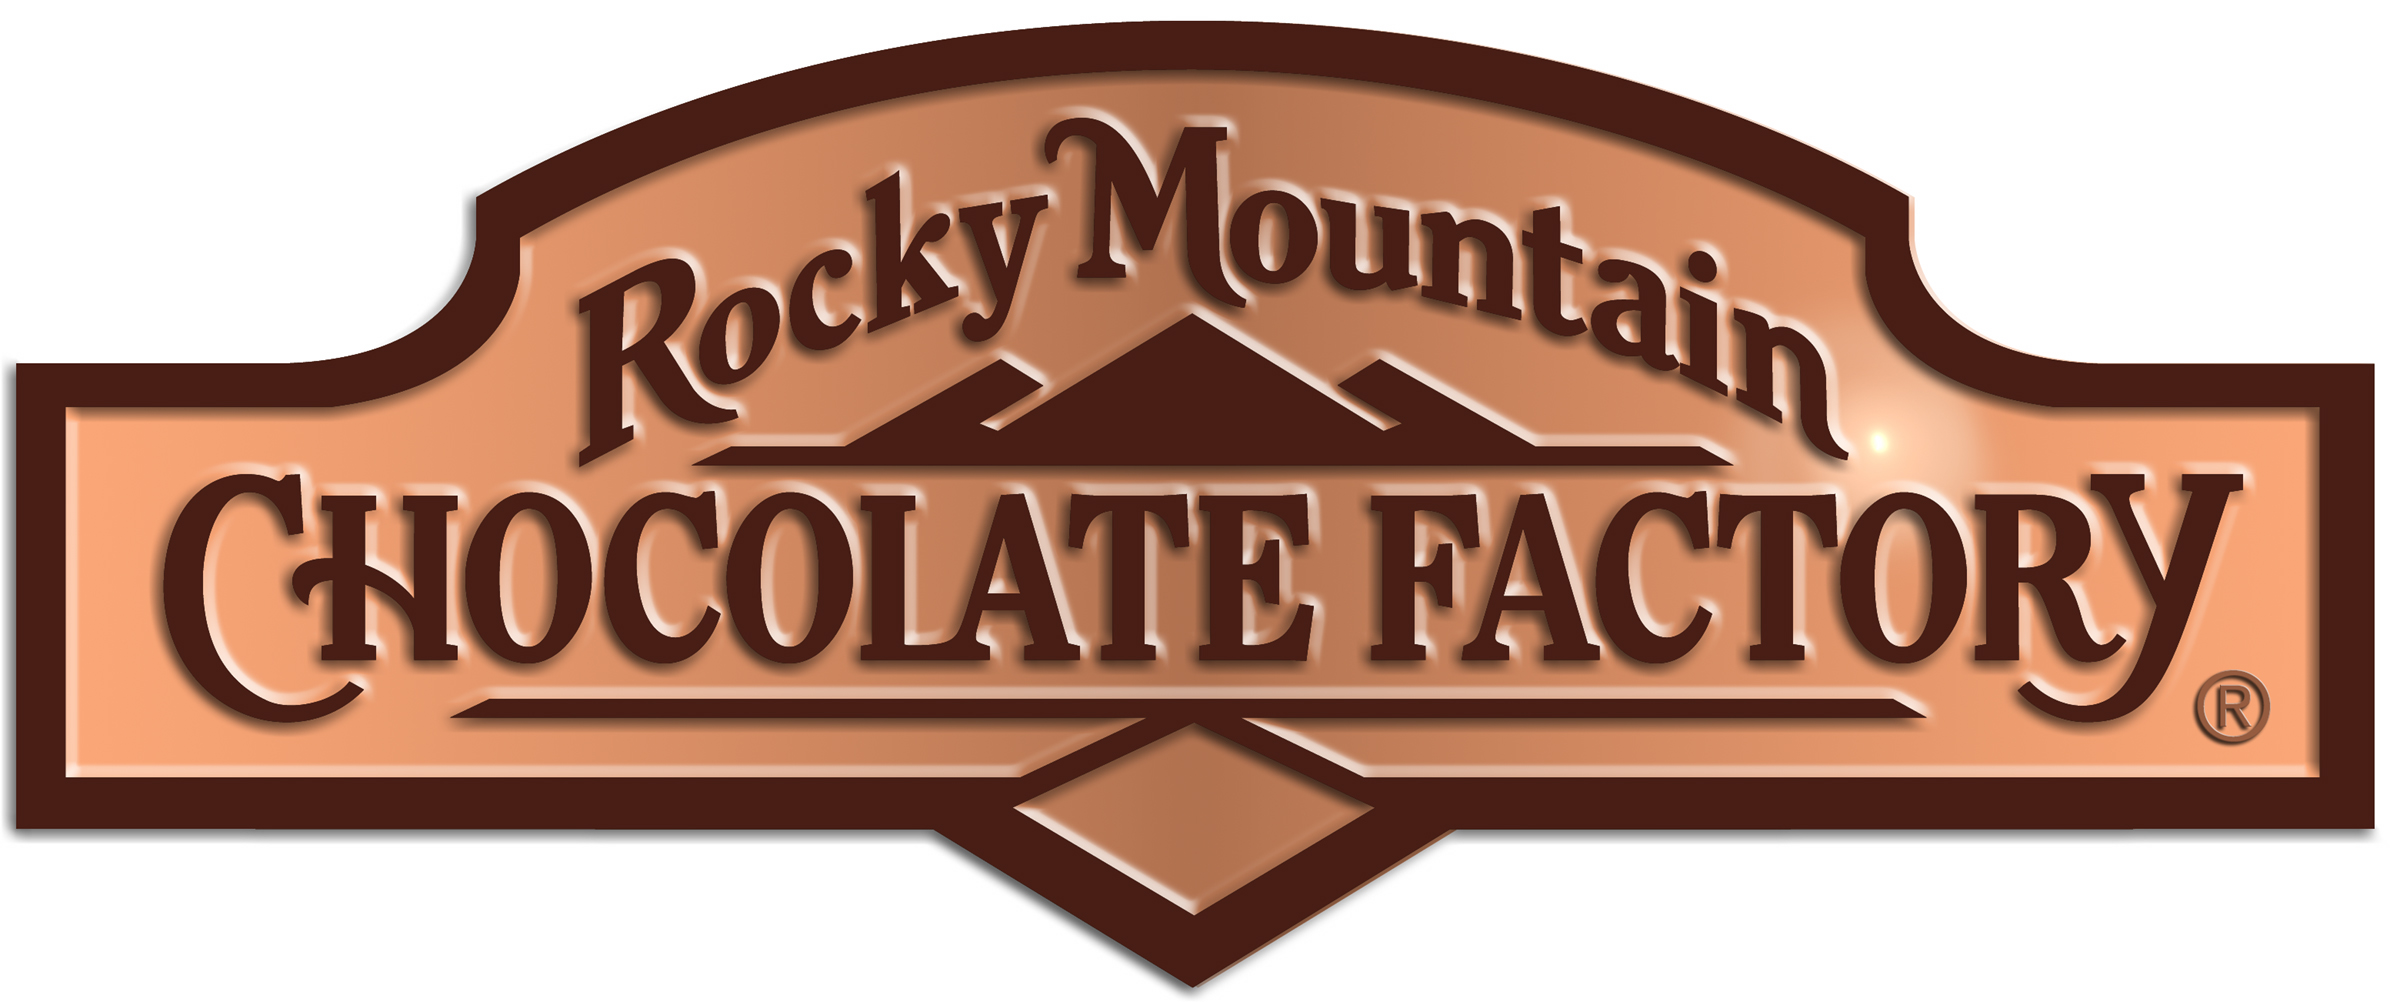 rocky mountain chocolate factory case essay Rocky mountain chocolate factory likely won't see much share price appreciation.